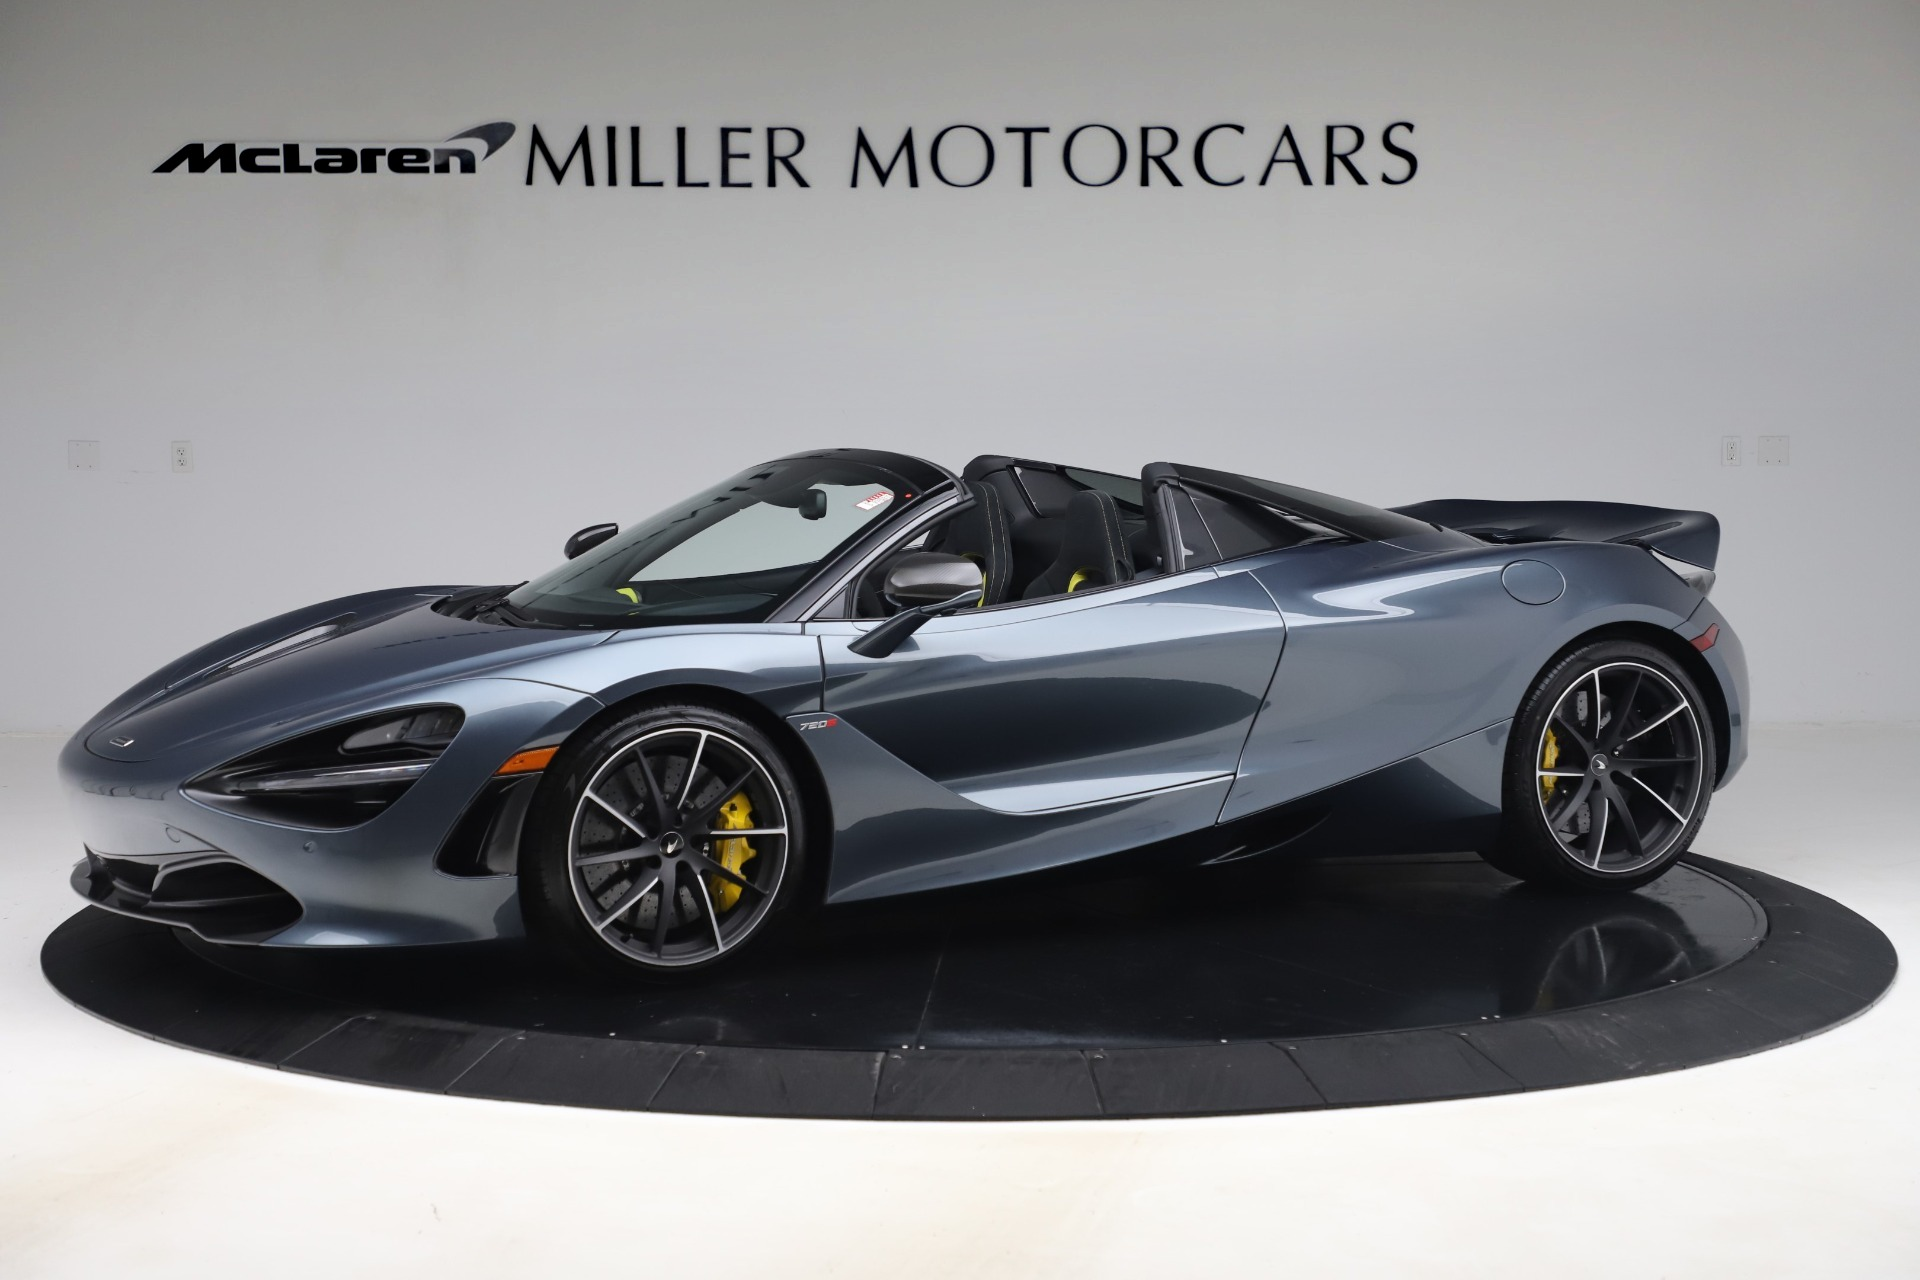 Used 2020 McLaren 720S Spider Convertible for sale Sold at Aston Martin of Greenwich in Greenwich CT 06830 1